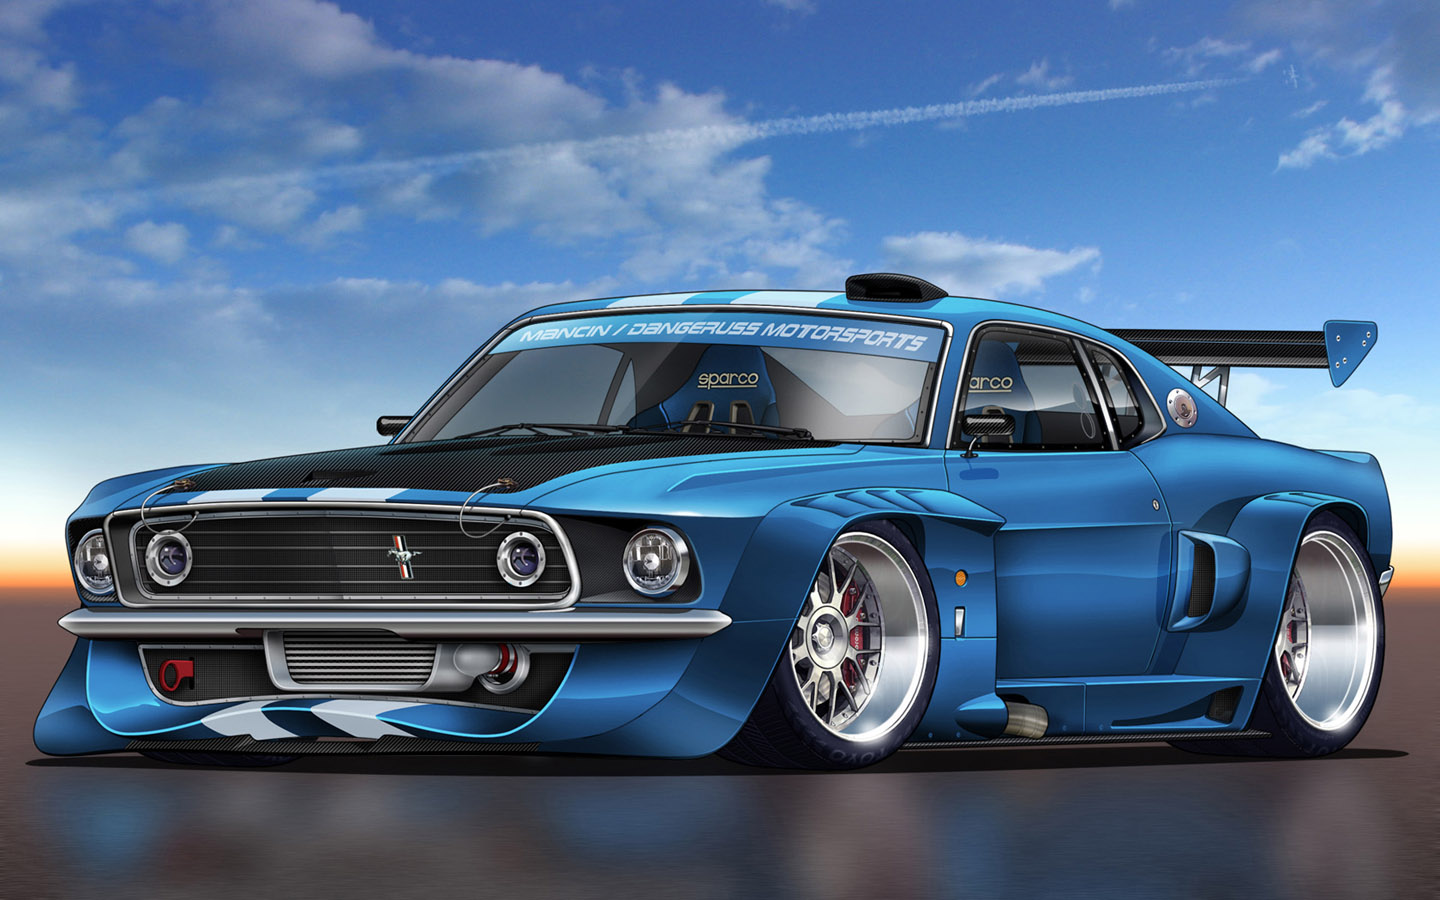 Muscle car wallpaper download muscle car wallpaper 57331 with 1440x900